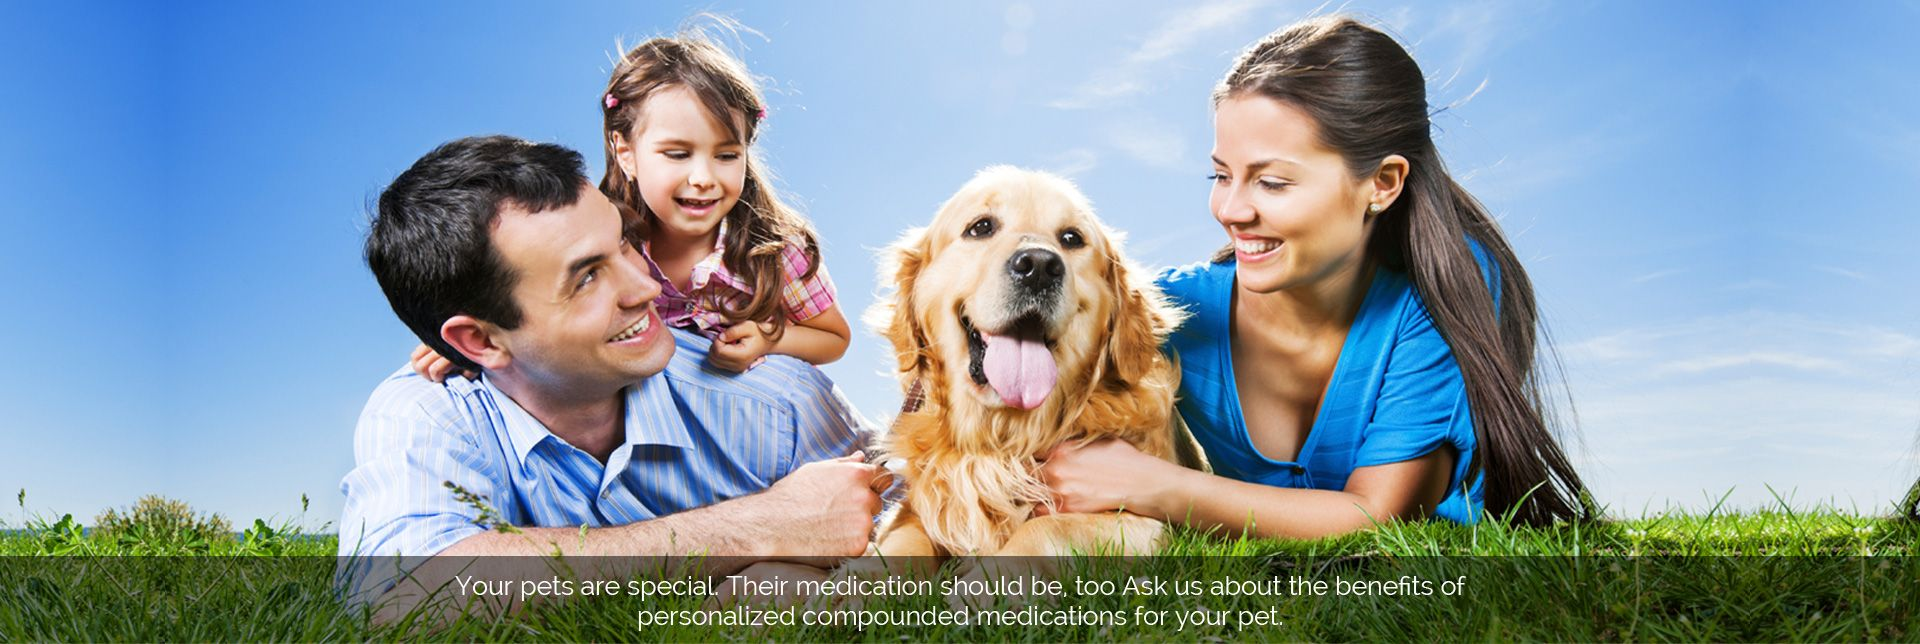 CareFirst Specialty Pharmacy is an independently owned